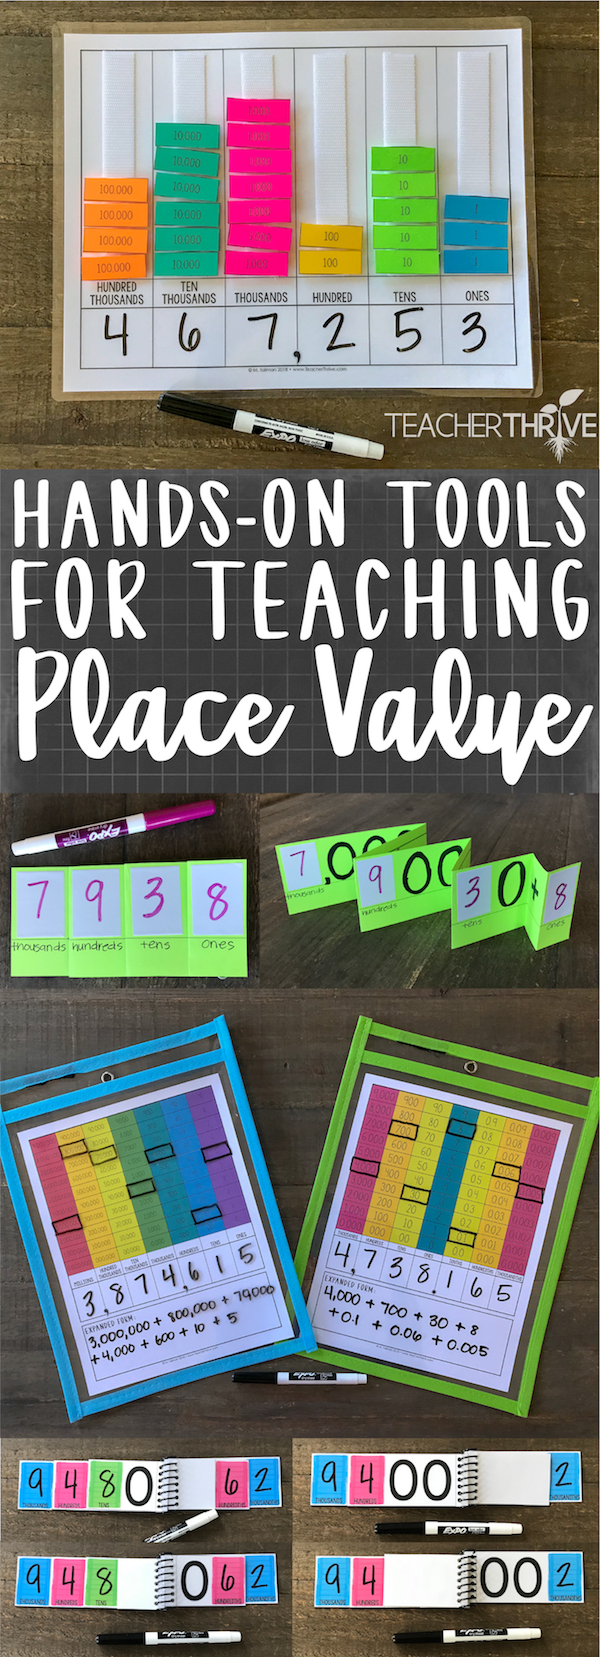 Hands-on activities for teaching place value. | Mathematik ...